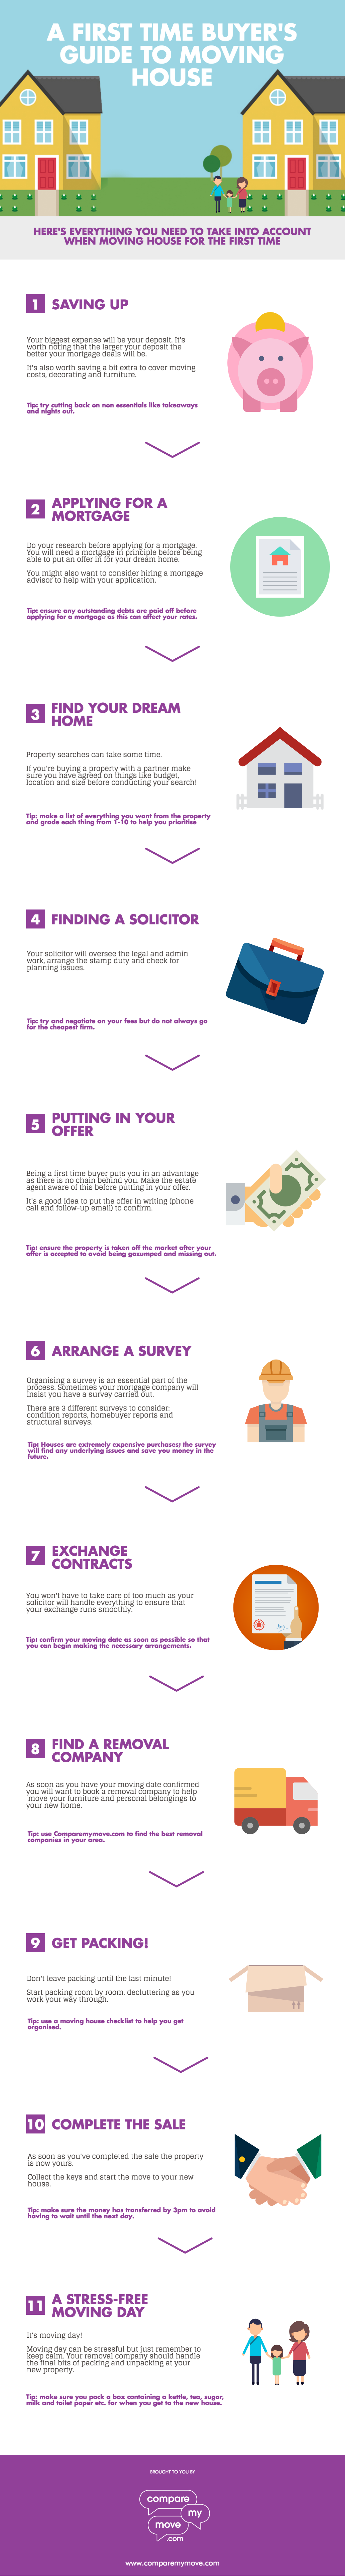 first-time-moving-house-tips-infographic-compare-my-move